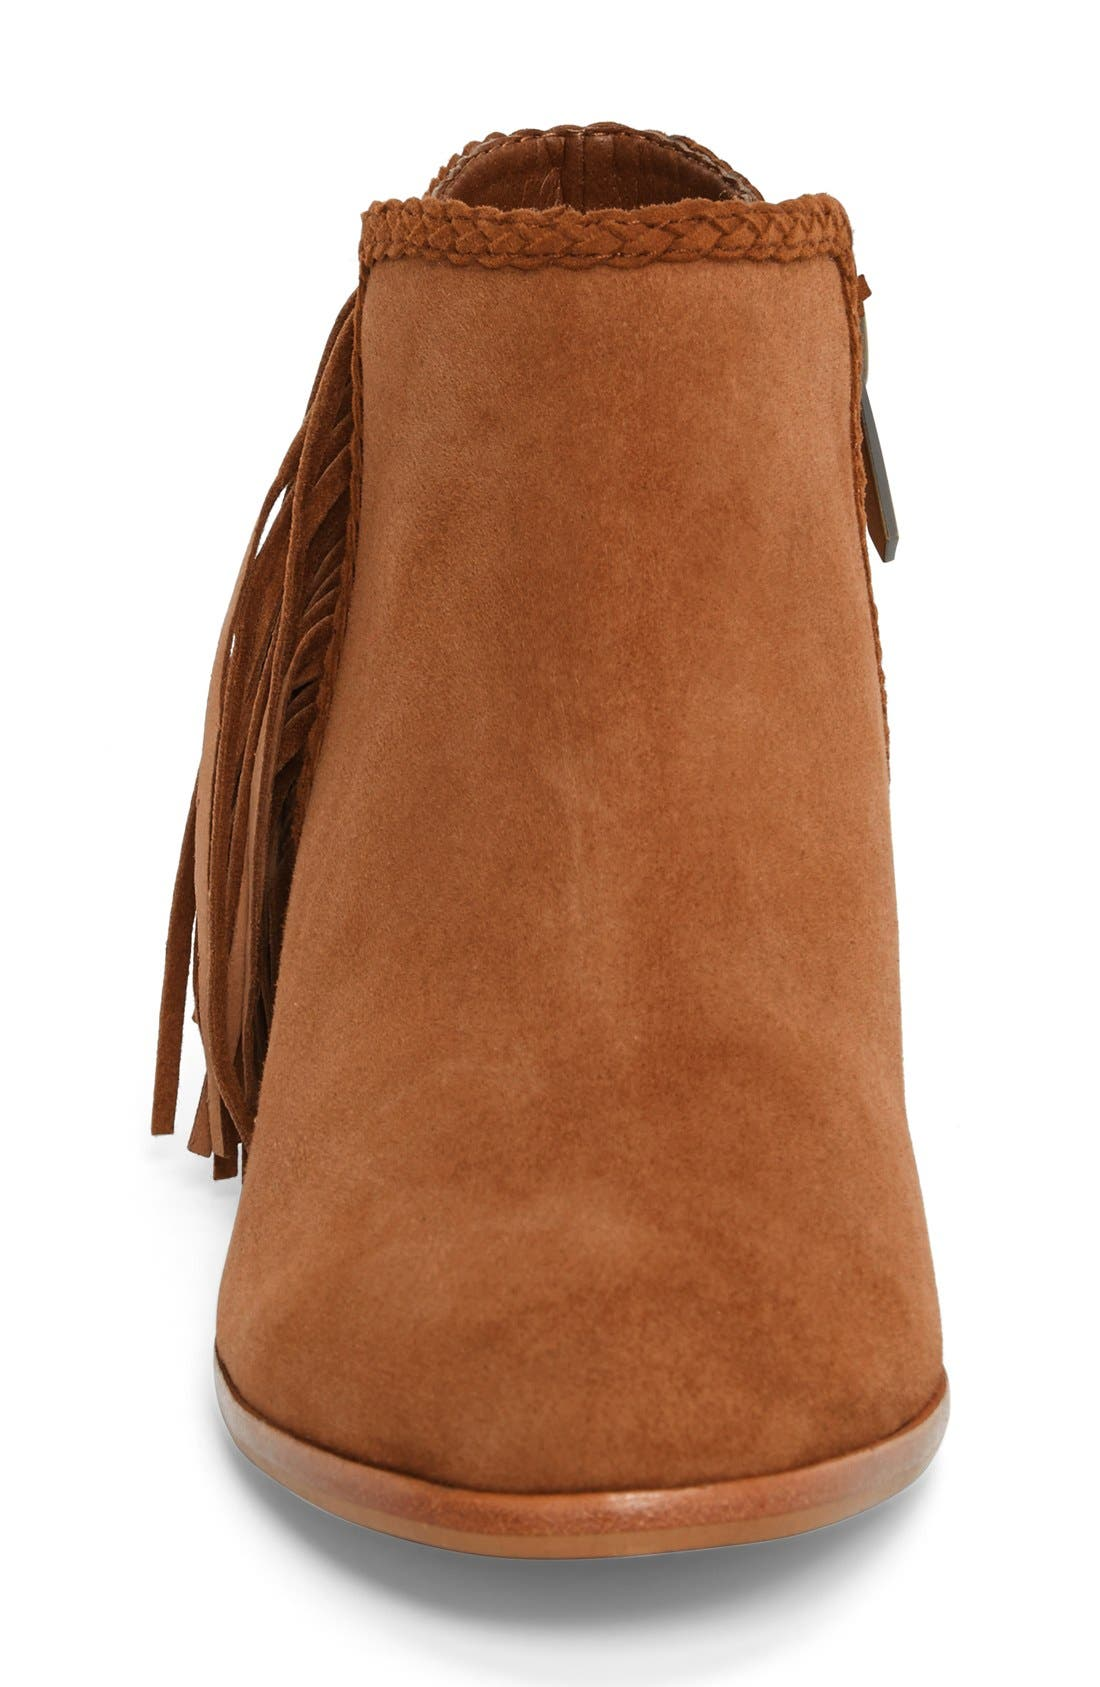 Alternate Image 3  - Sam Edelman 'Paige' Fringed Ankle Bootie (Women)